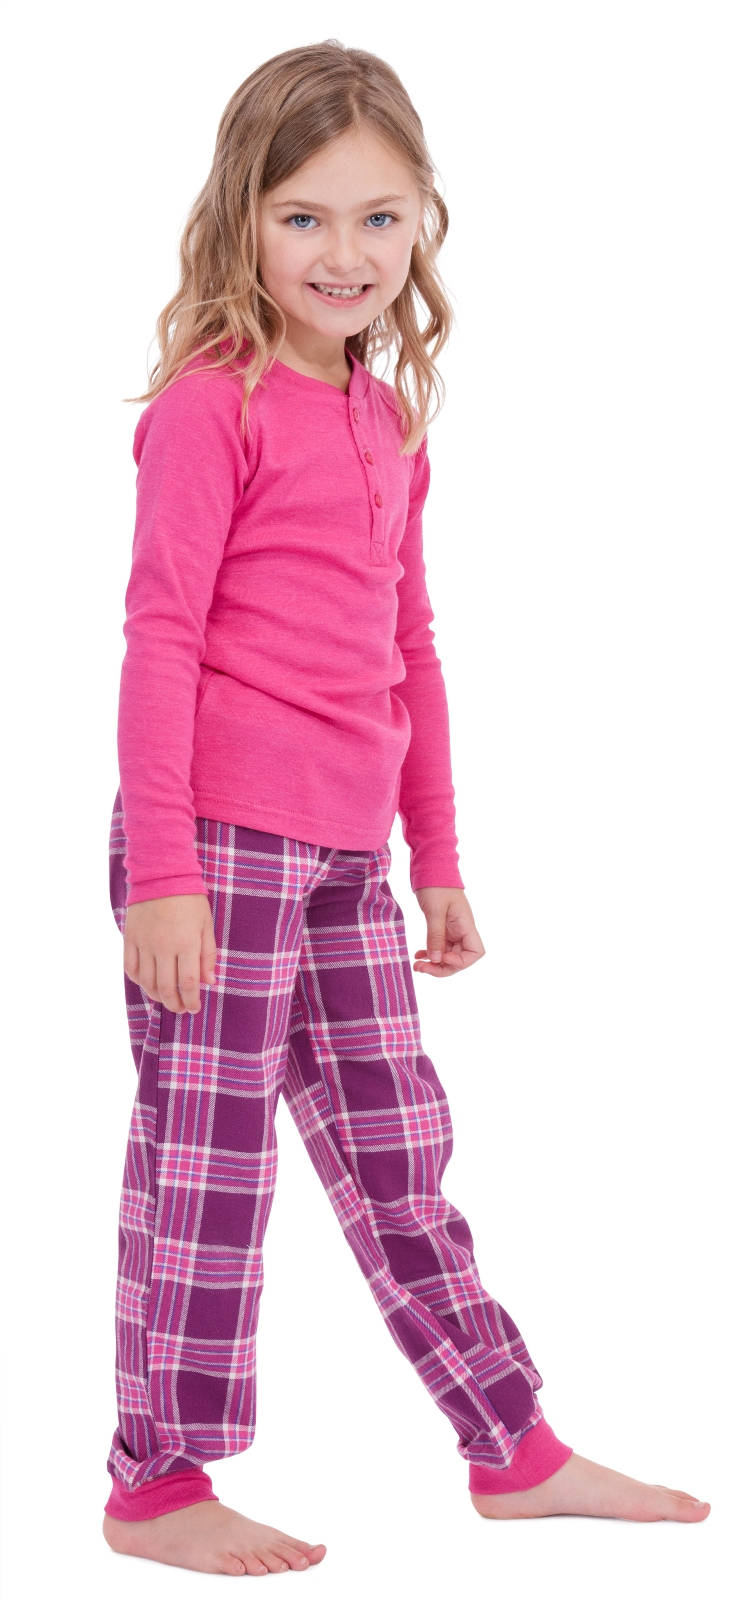 Kids Pyjamas are a family run business specialising in quality children's c haracter pyjamas, backpacks and underwear at an affordable price.. All of our products are genuine licensed products and where applicable have passed all of the relevant safety tests to sell within the UK market.